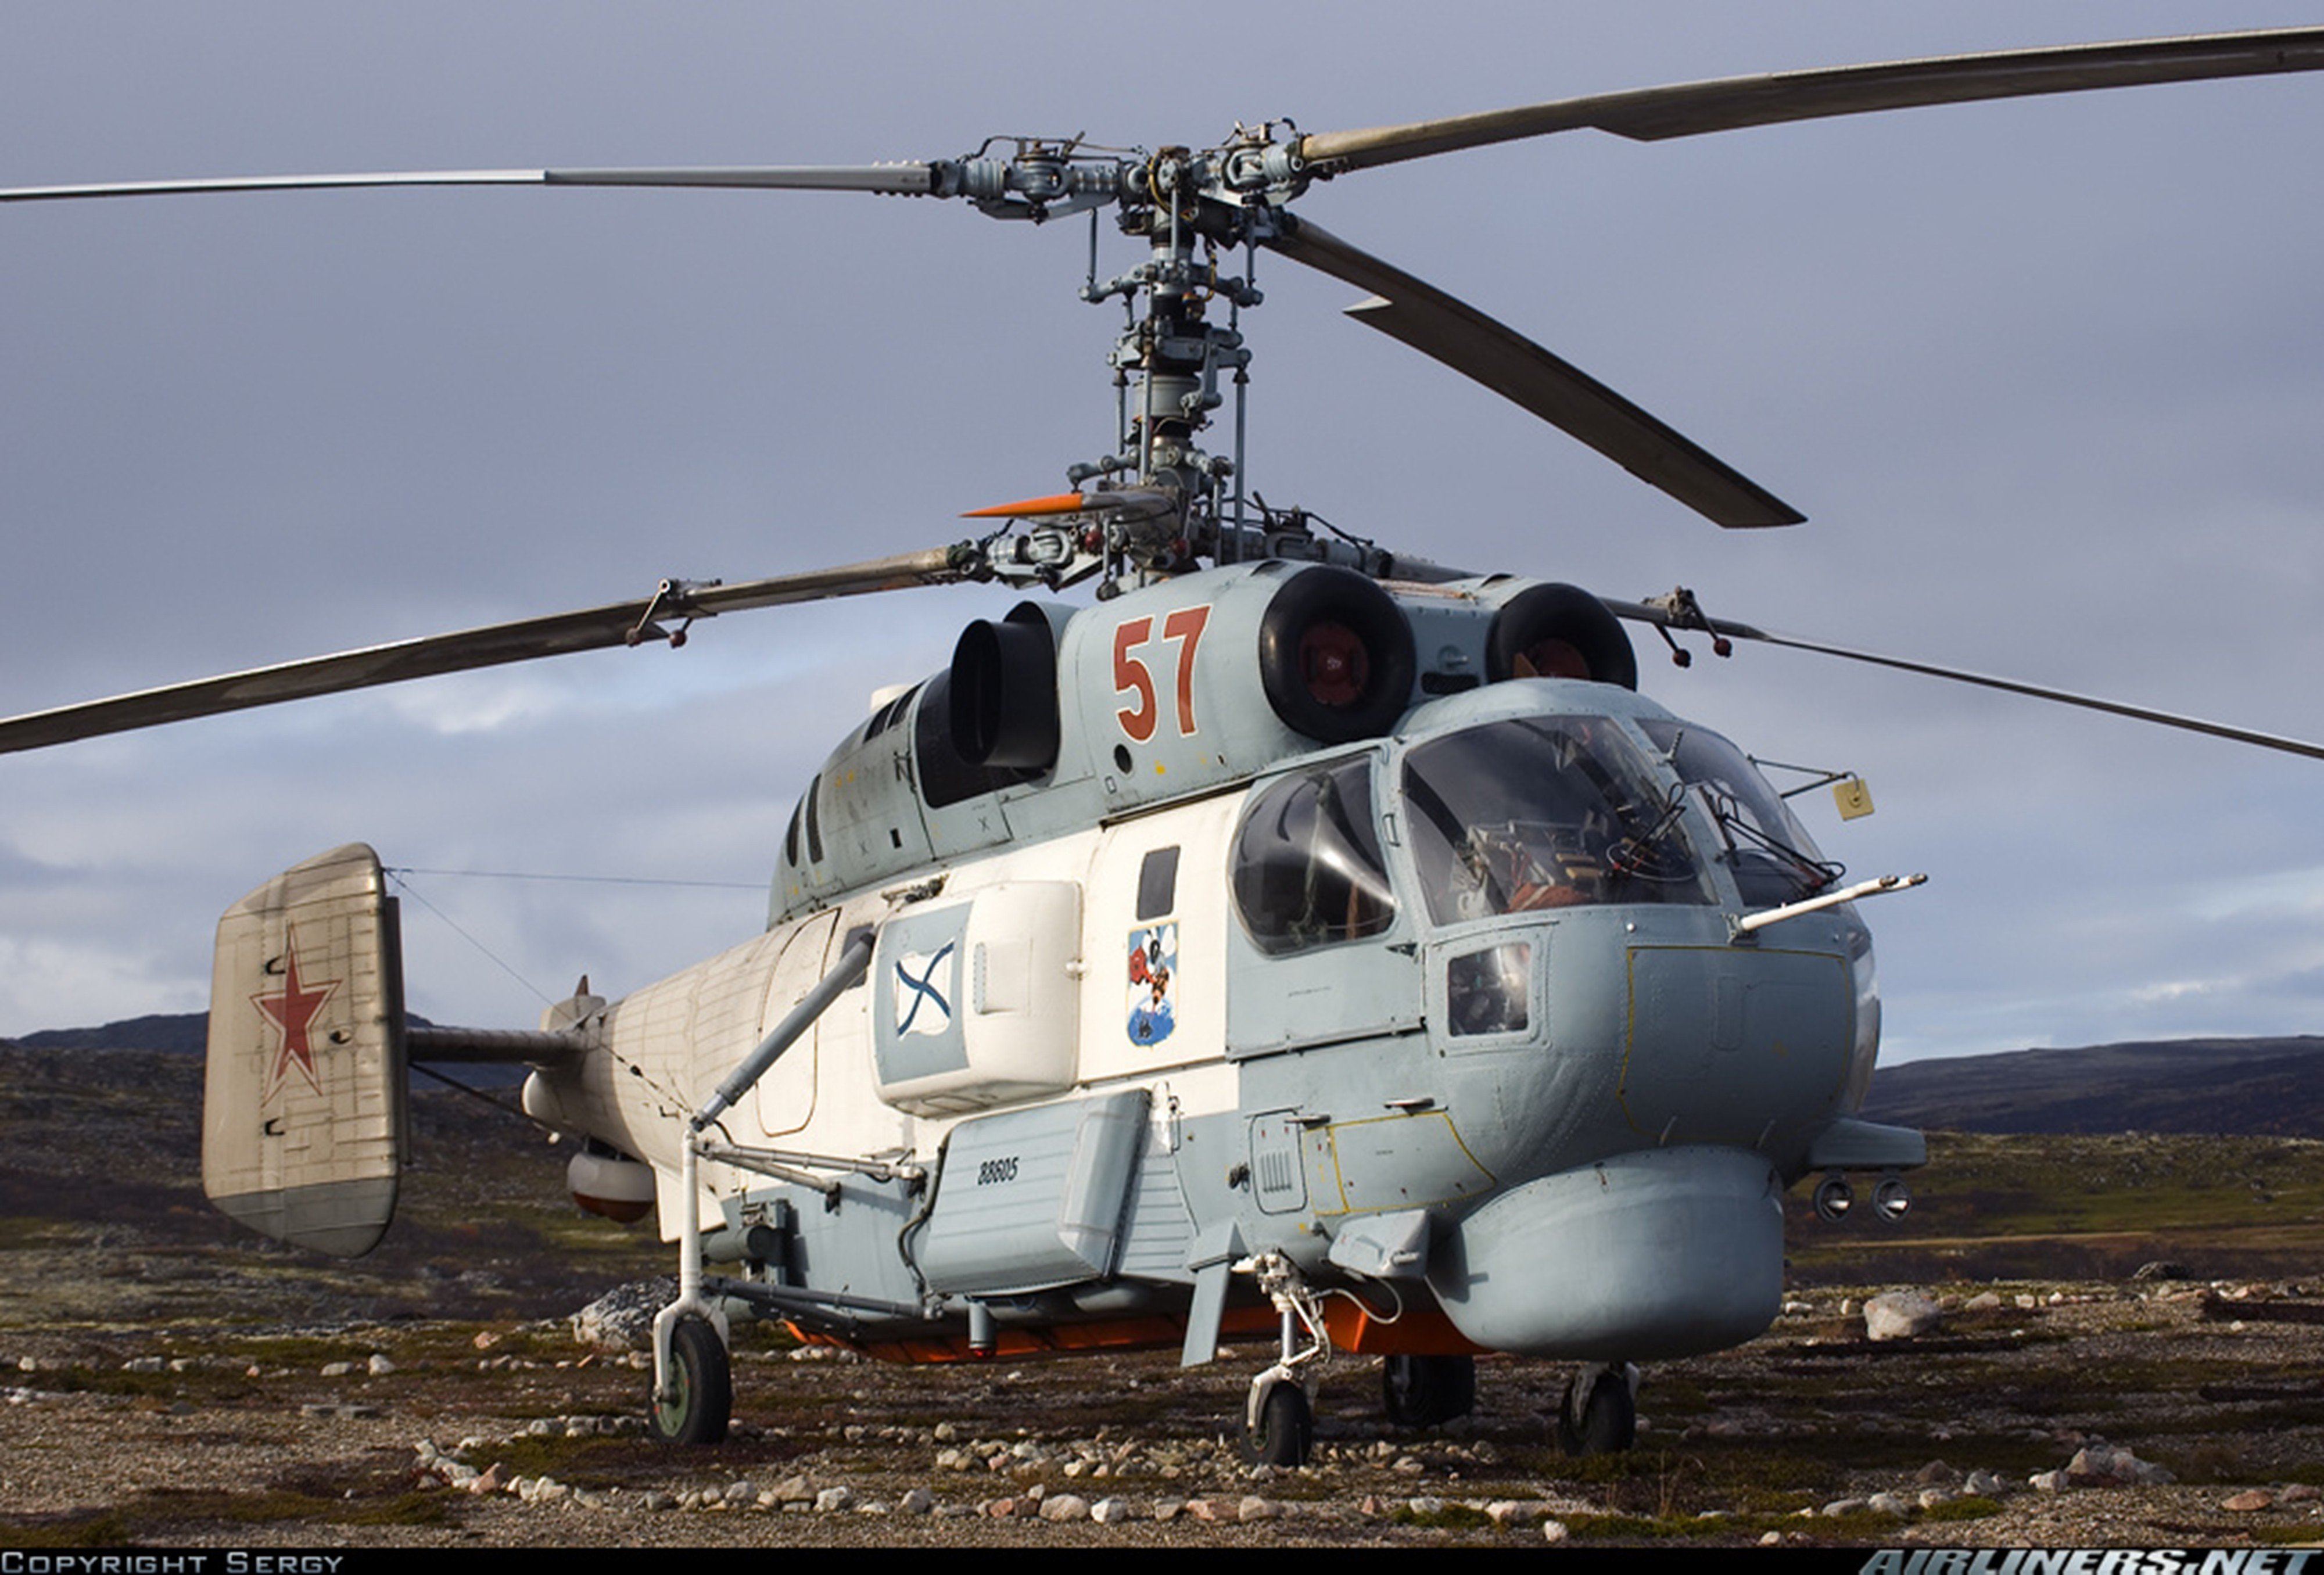 russian red star Russia helicopter aircraft Kamov Ka-26 military navy transport rescue